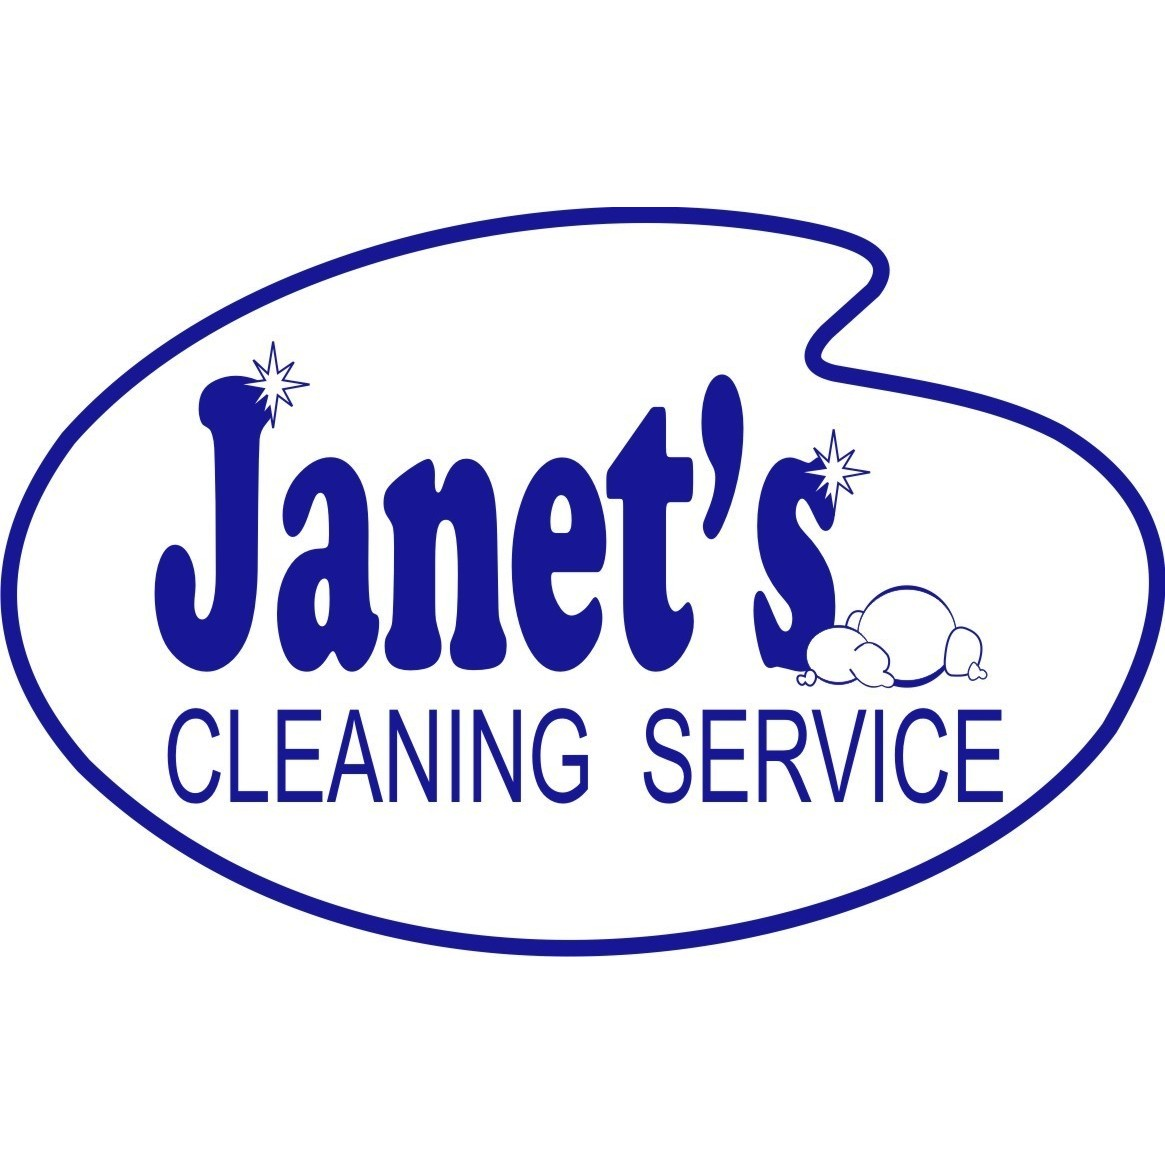 Janet's Cleaning Service - Houston, TX - General Contractors